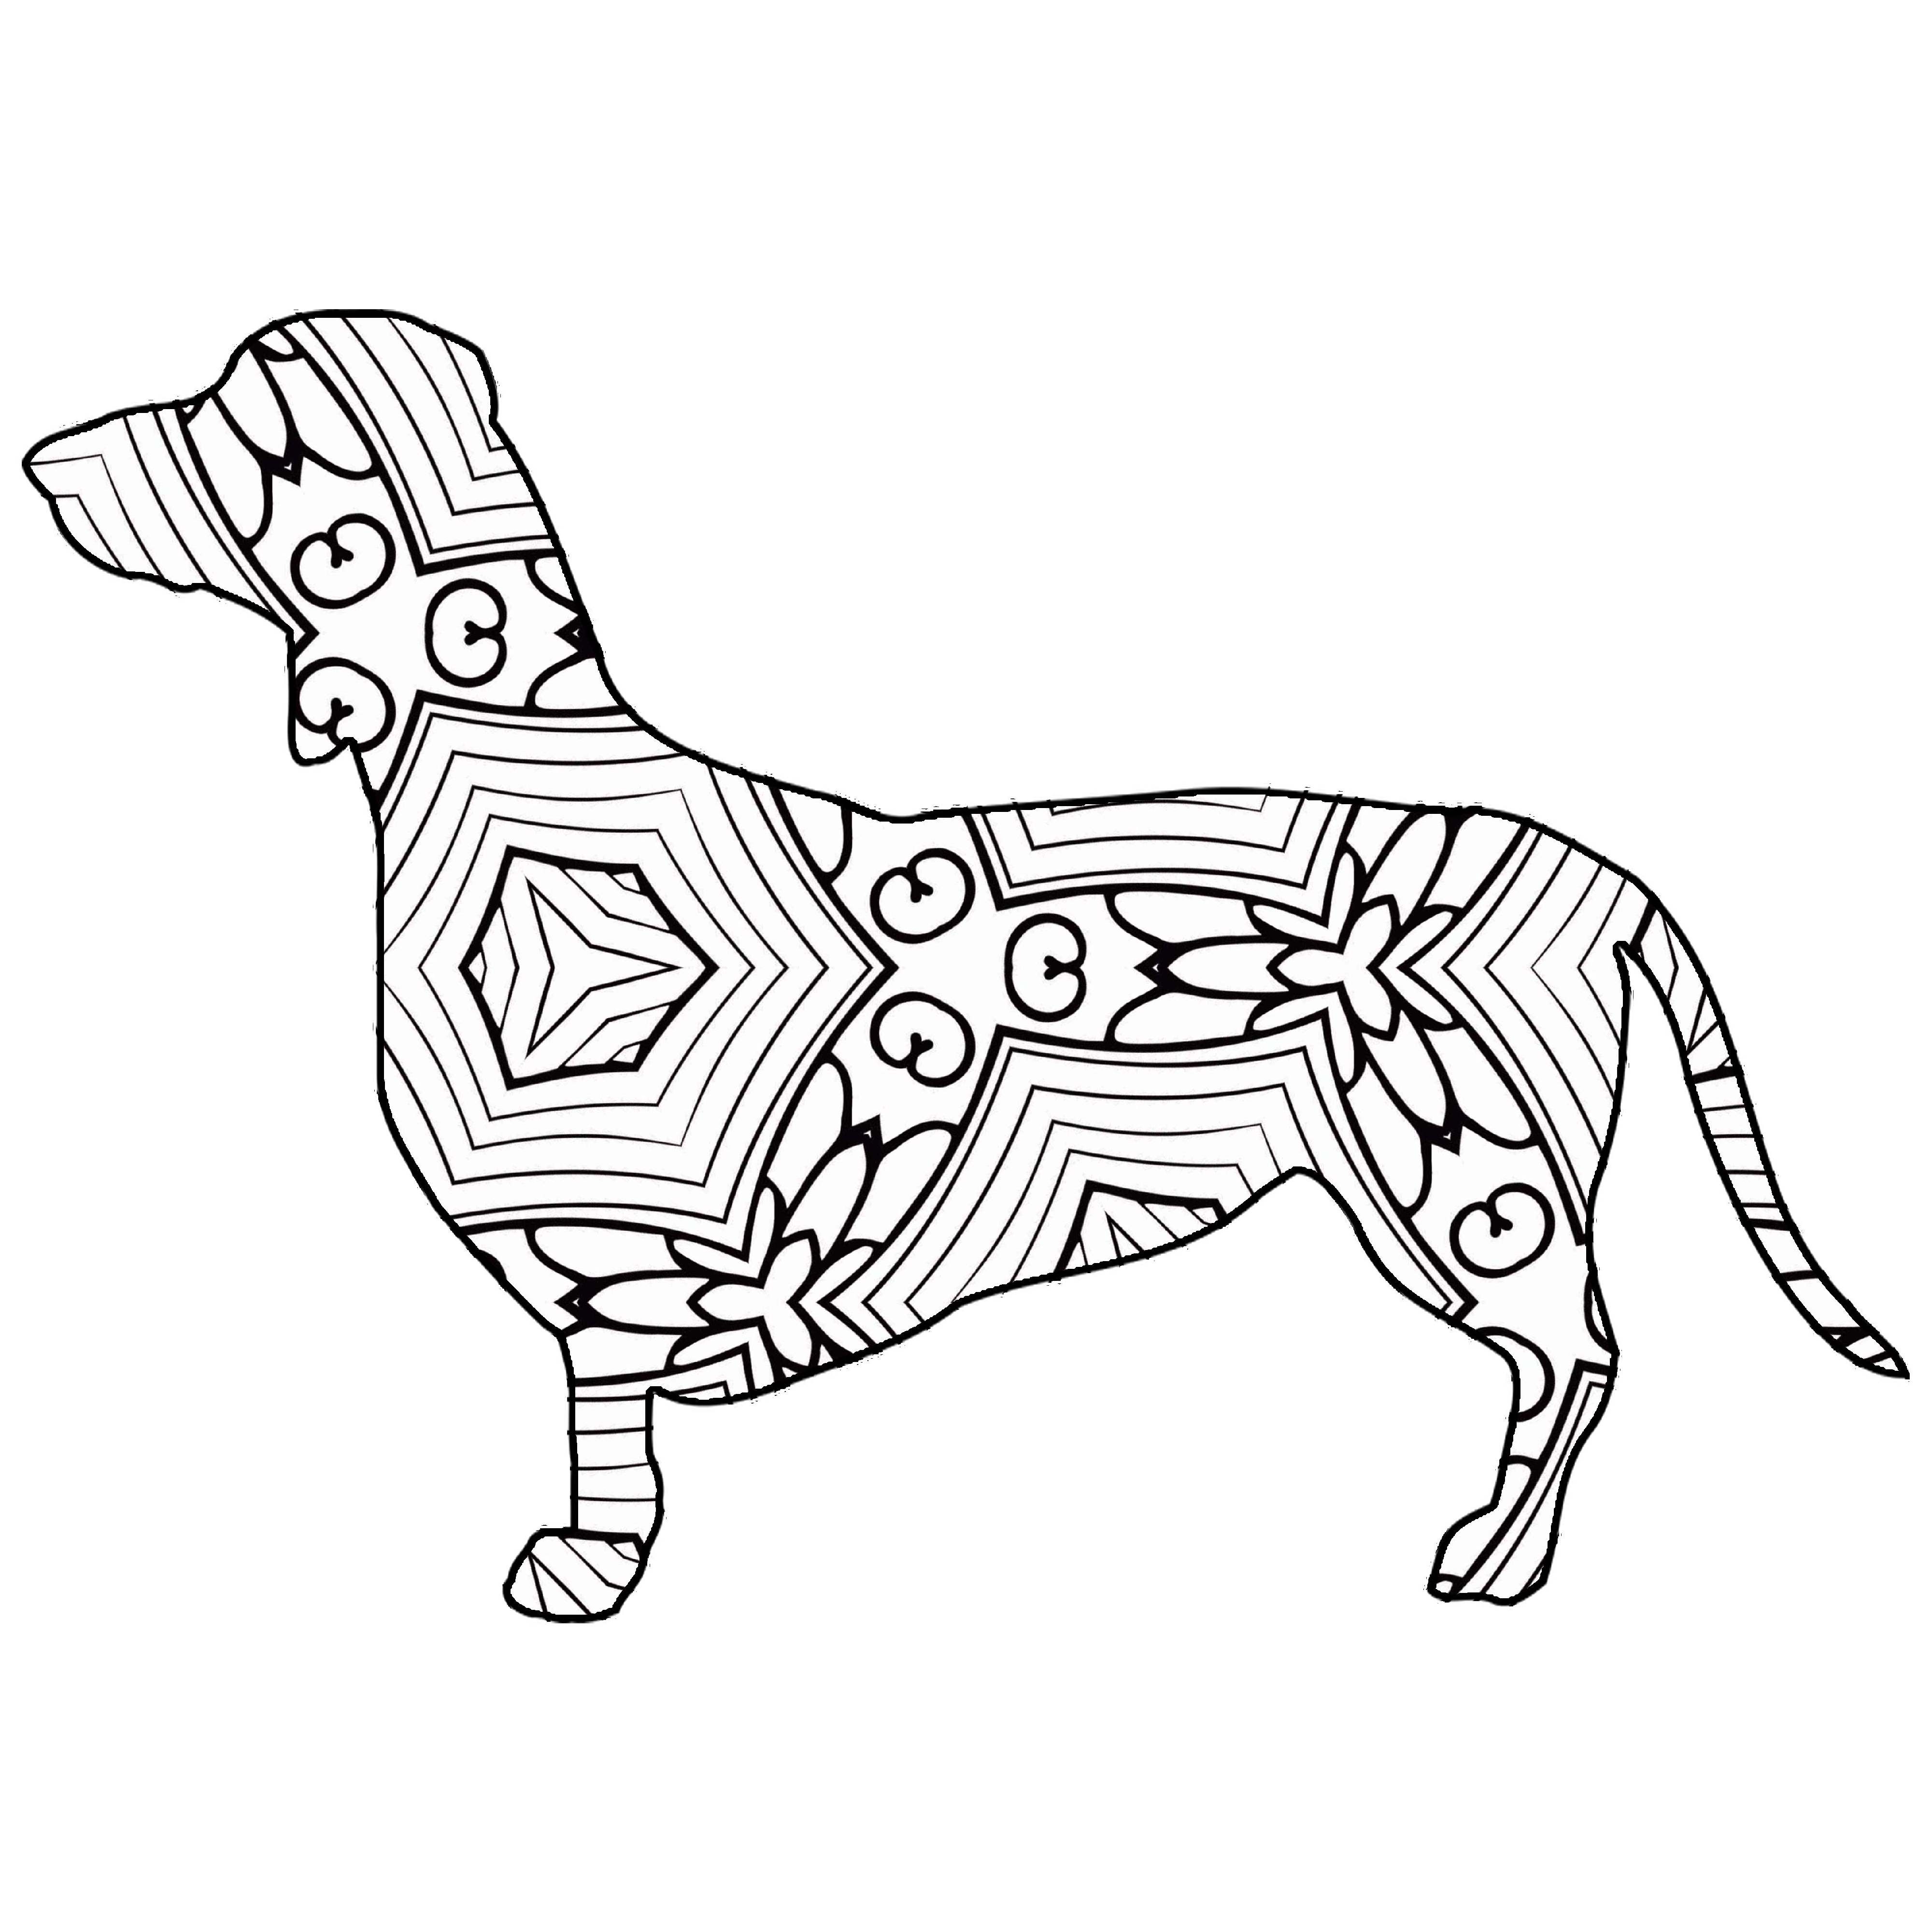 Dachshund Coloring Pages Pattern